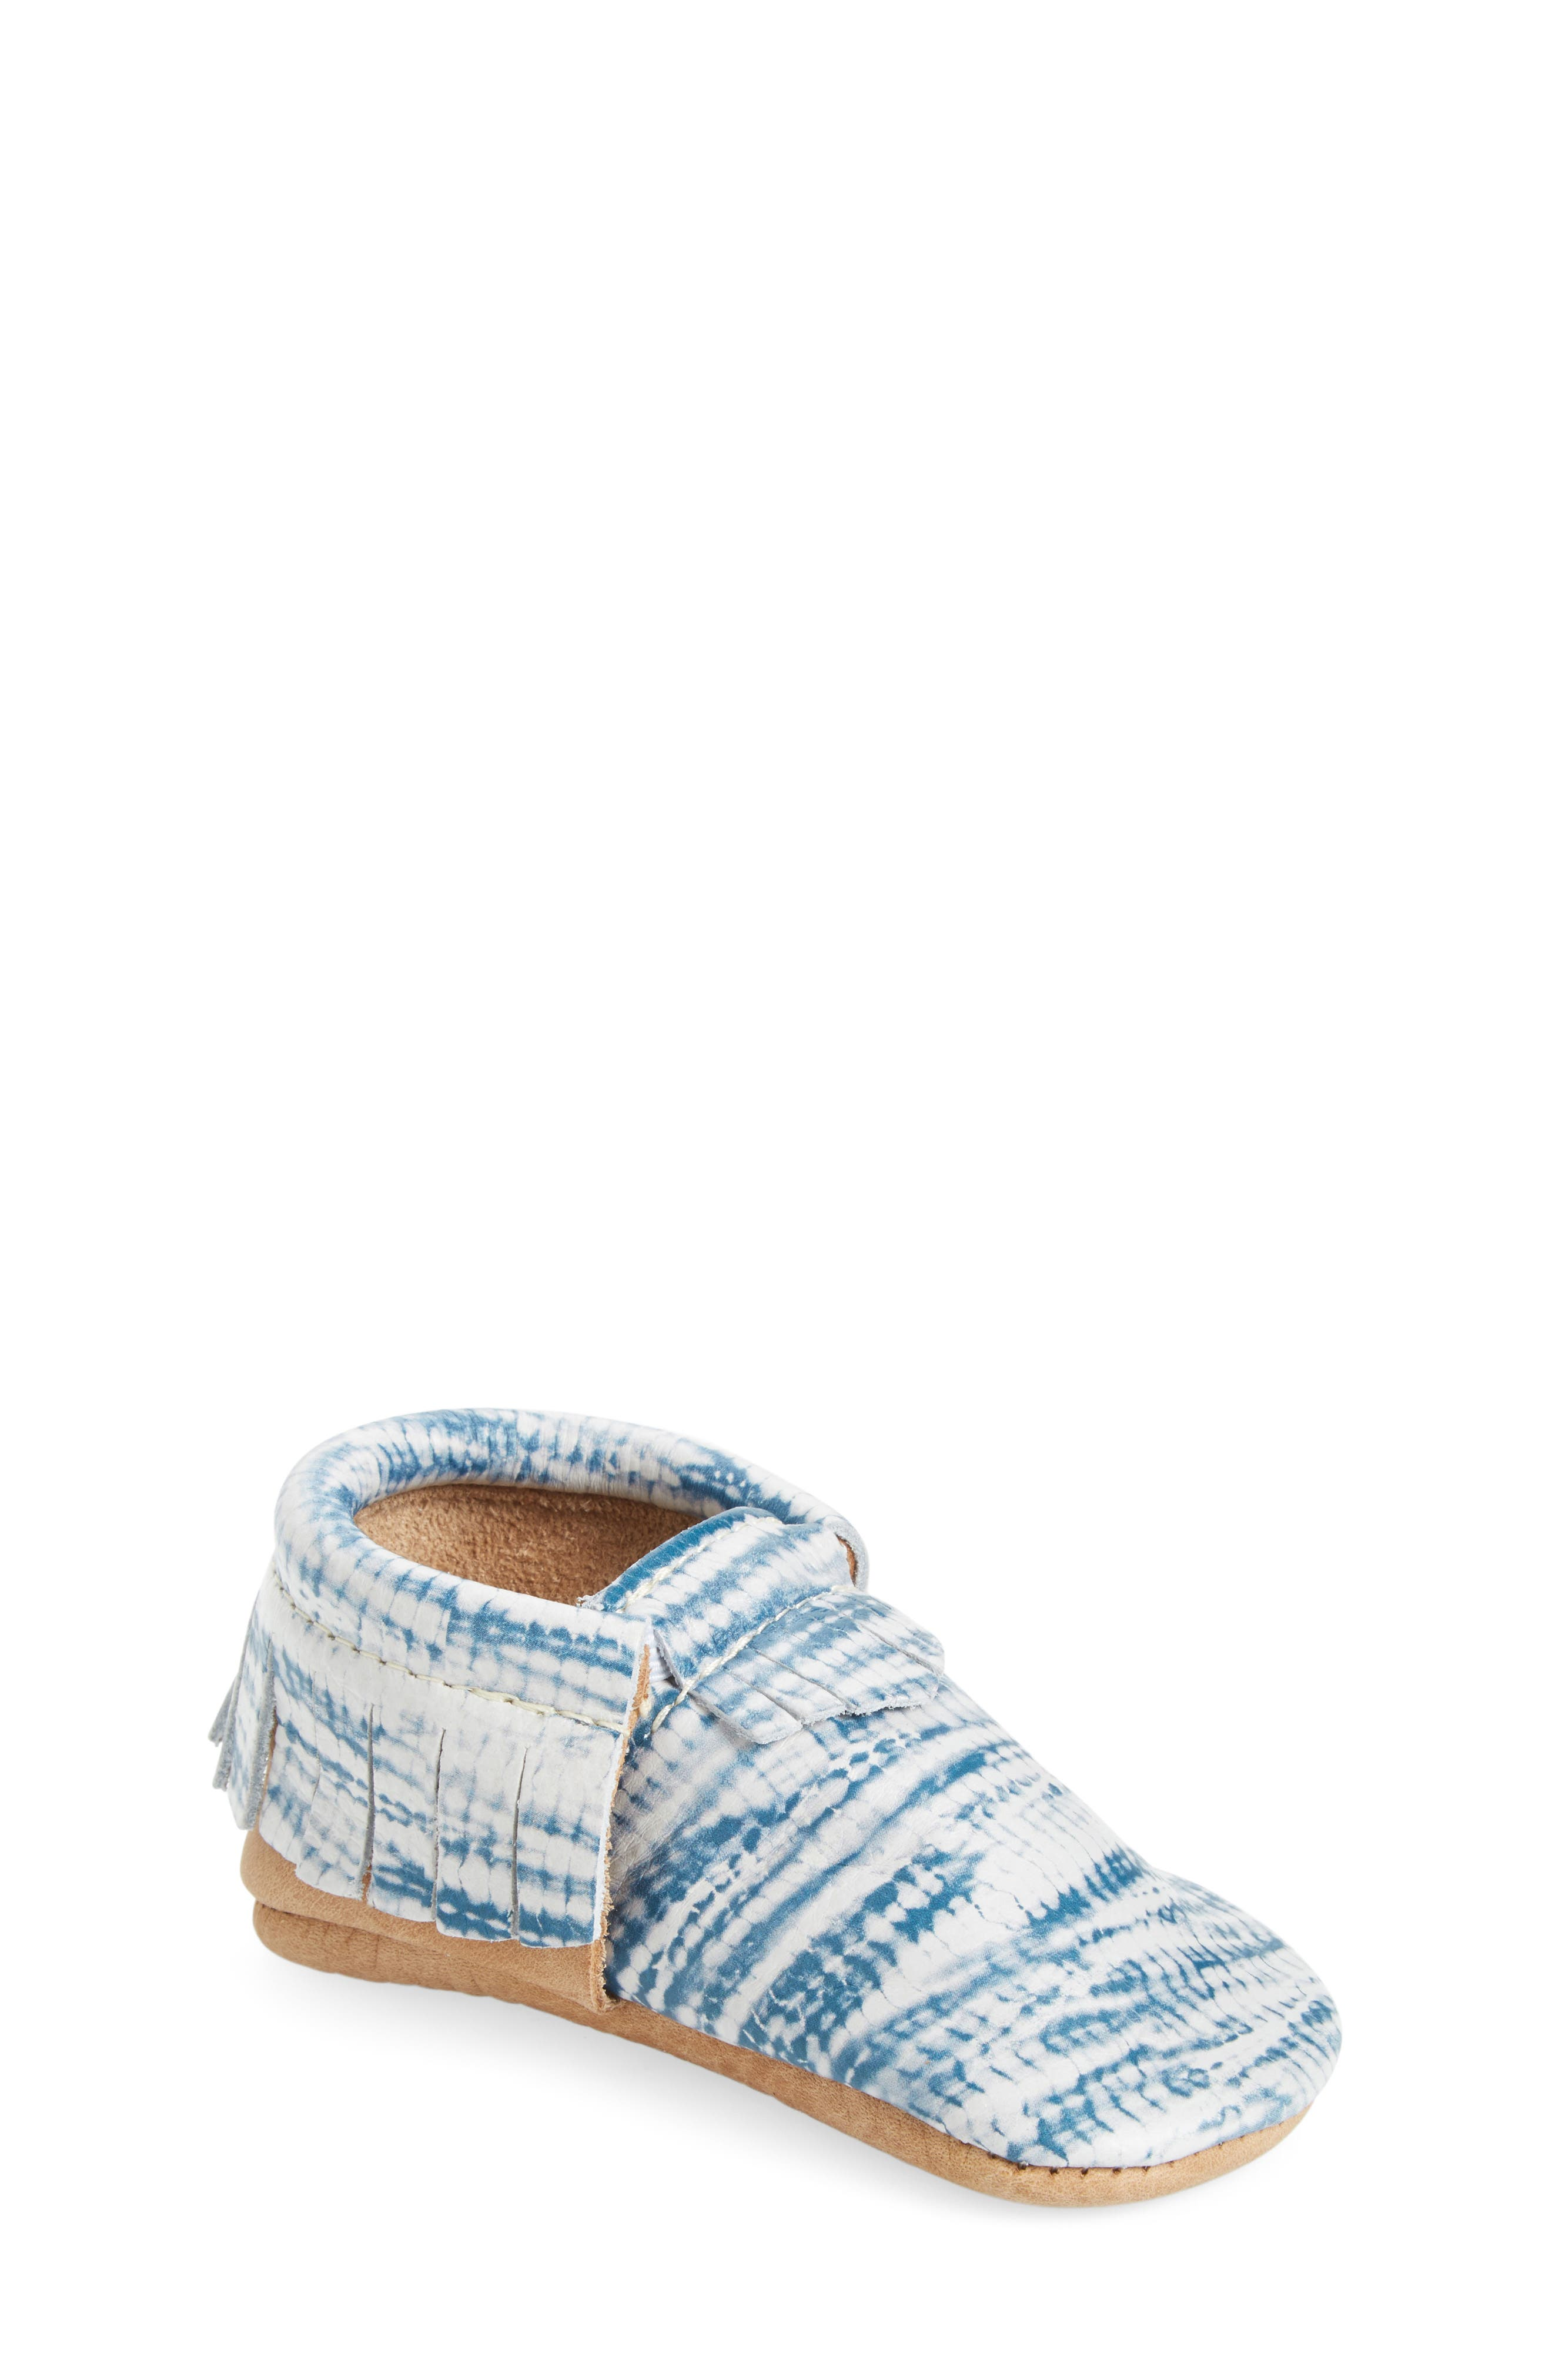 Tie Dye Moccasin,                             Main thumbnail 1, color,                             402